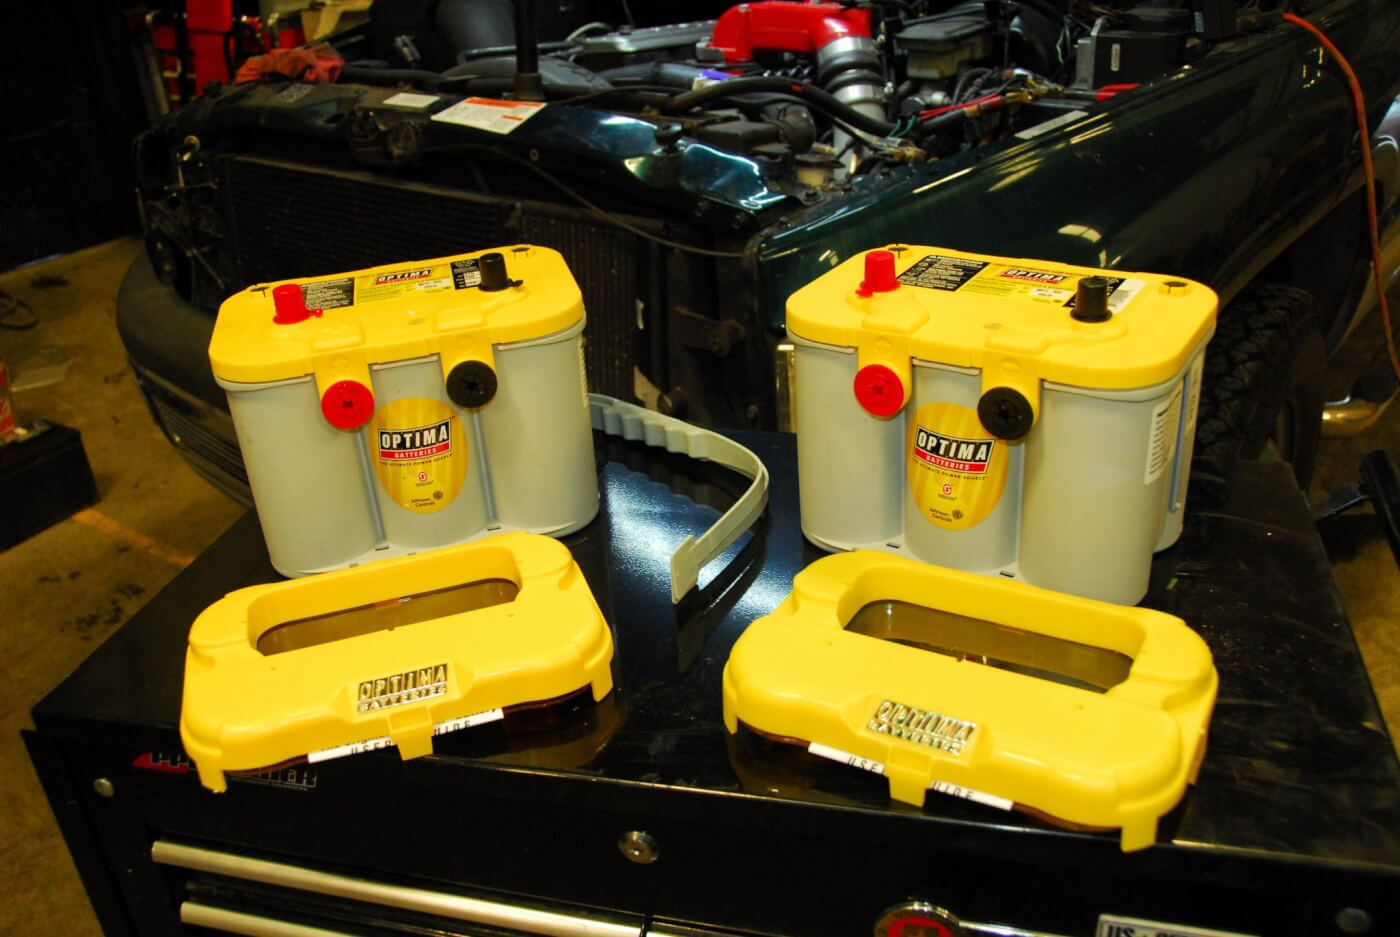 1. Optima's YellowTop model is recommended for diesel applications, since it's a dual-purpose battery. That means it not only provides plenty of CCA for firing up an older diesel engine, but also offers effective cycling capability as well, so that it can repeatedly be brought back from deep power drains to full charge for electronic accessories. The cases in front of the batteries are spacers that allow for a variety of fitments. If needed, they can be attached underneath to raise up the battery to the original factory height.